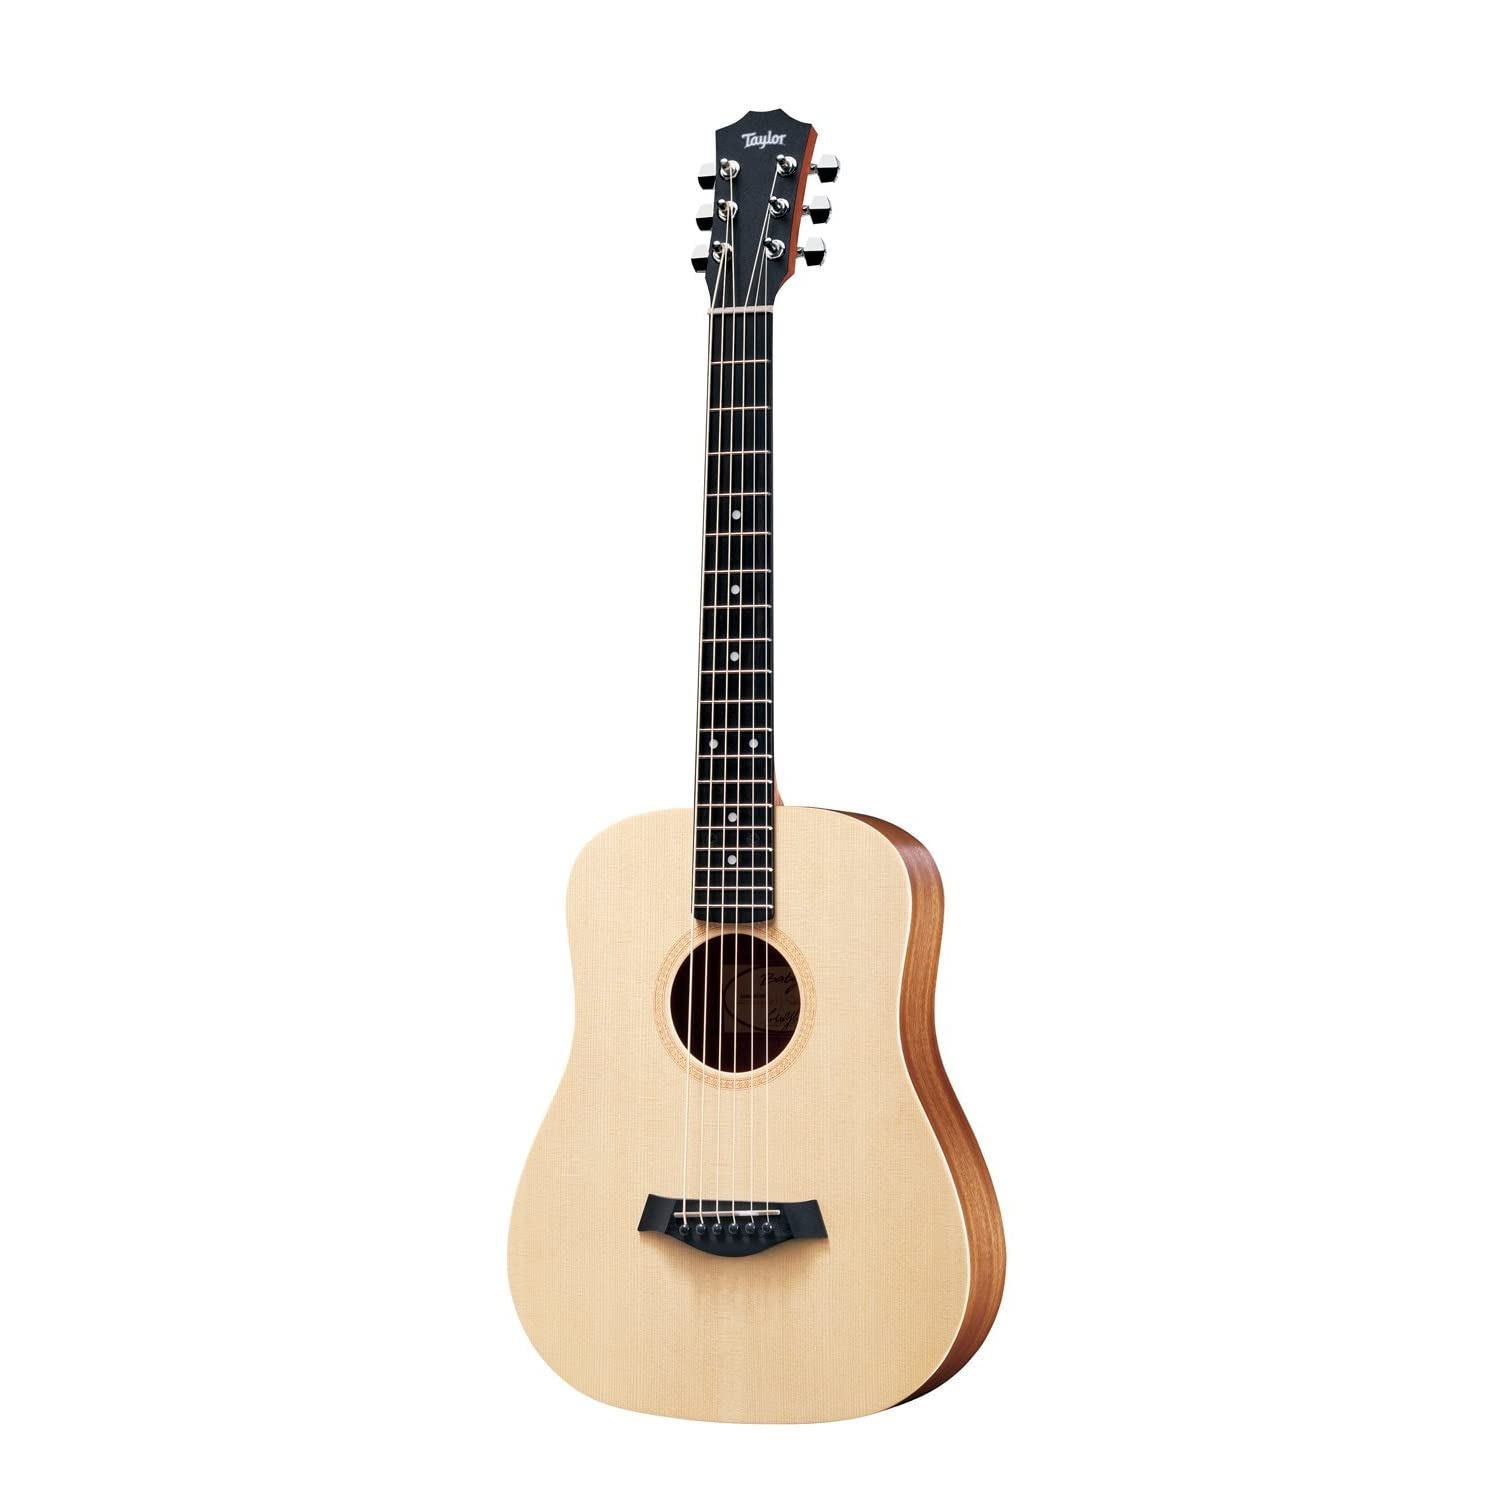 beginner guitar deals guides news and advice the best acoustic guitar brands for beginners. Black Bedroom Furniture Sets. Home Design Ideas